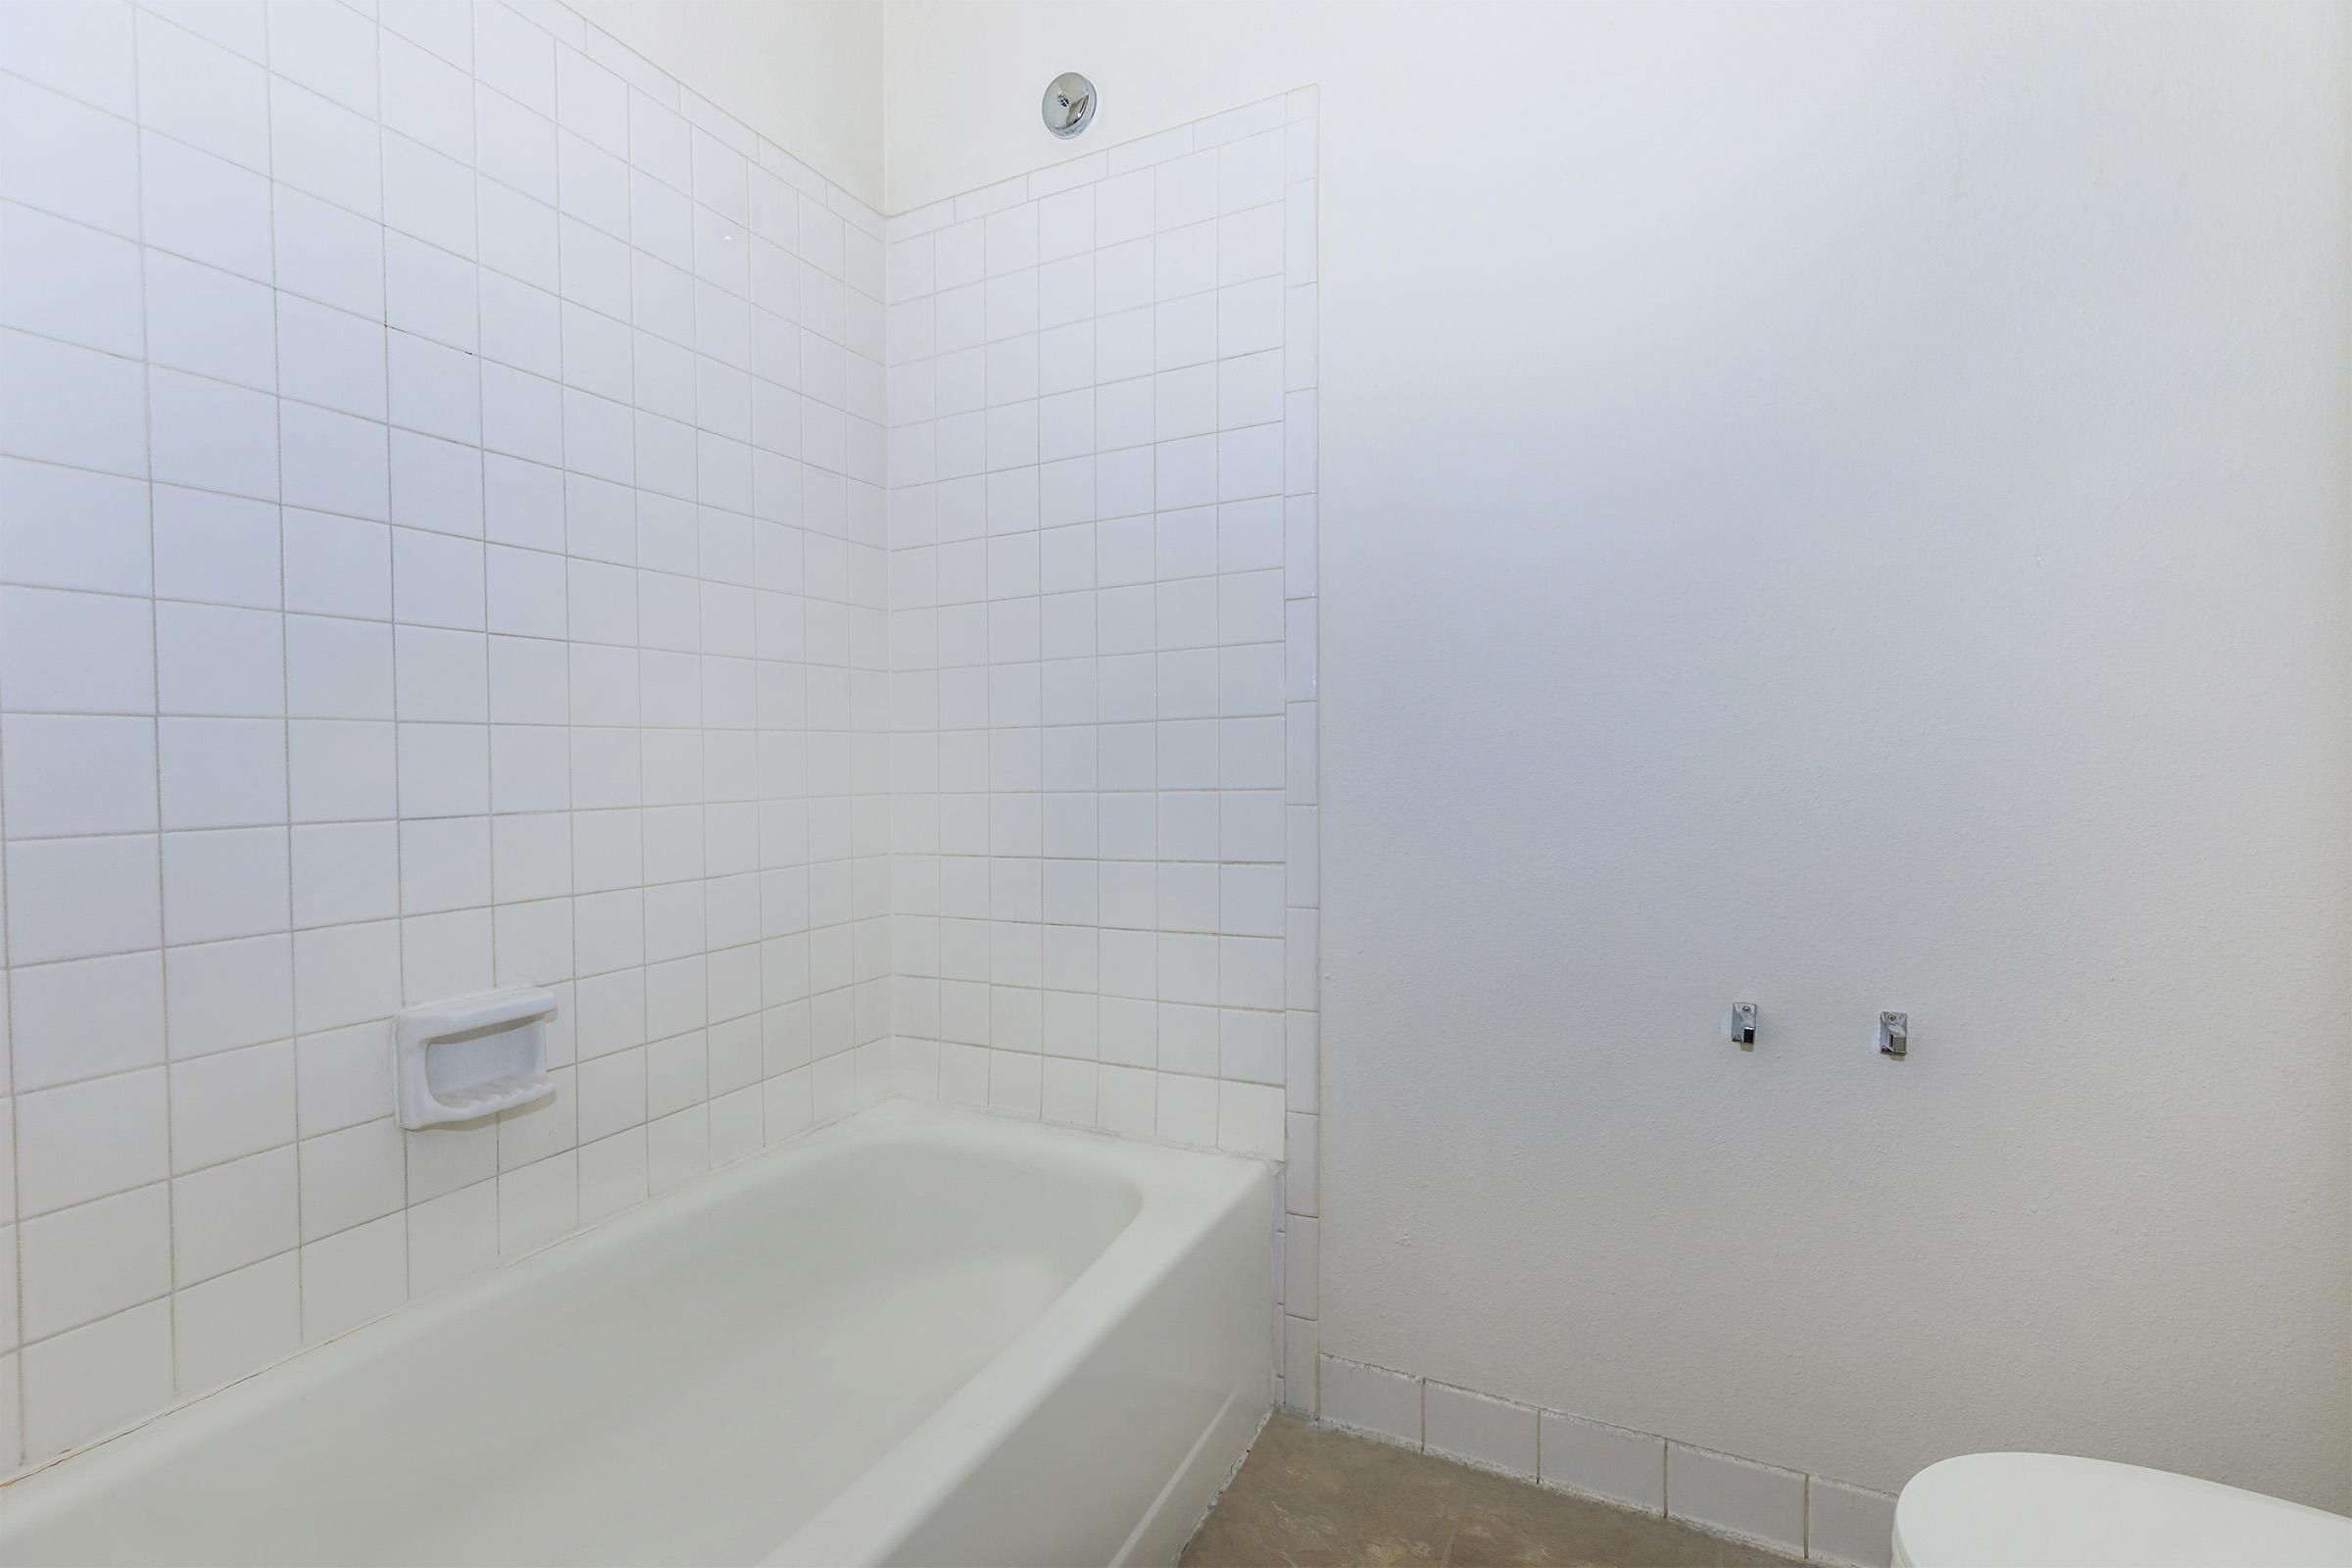 a large white tub next to a tiled wall